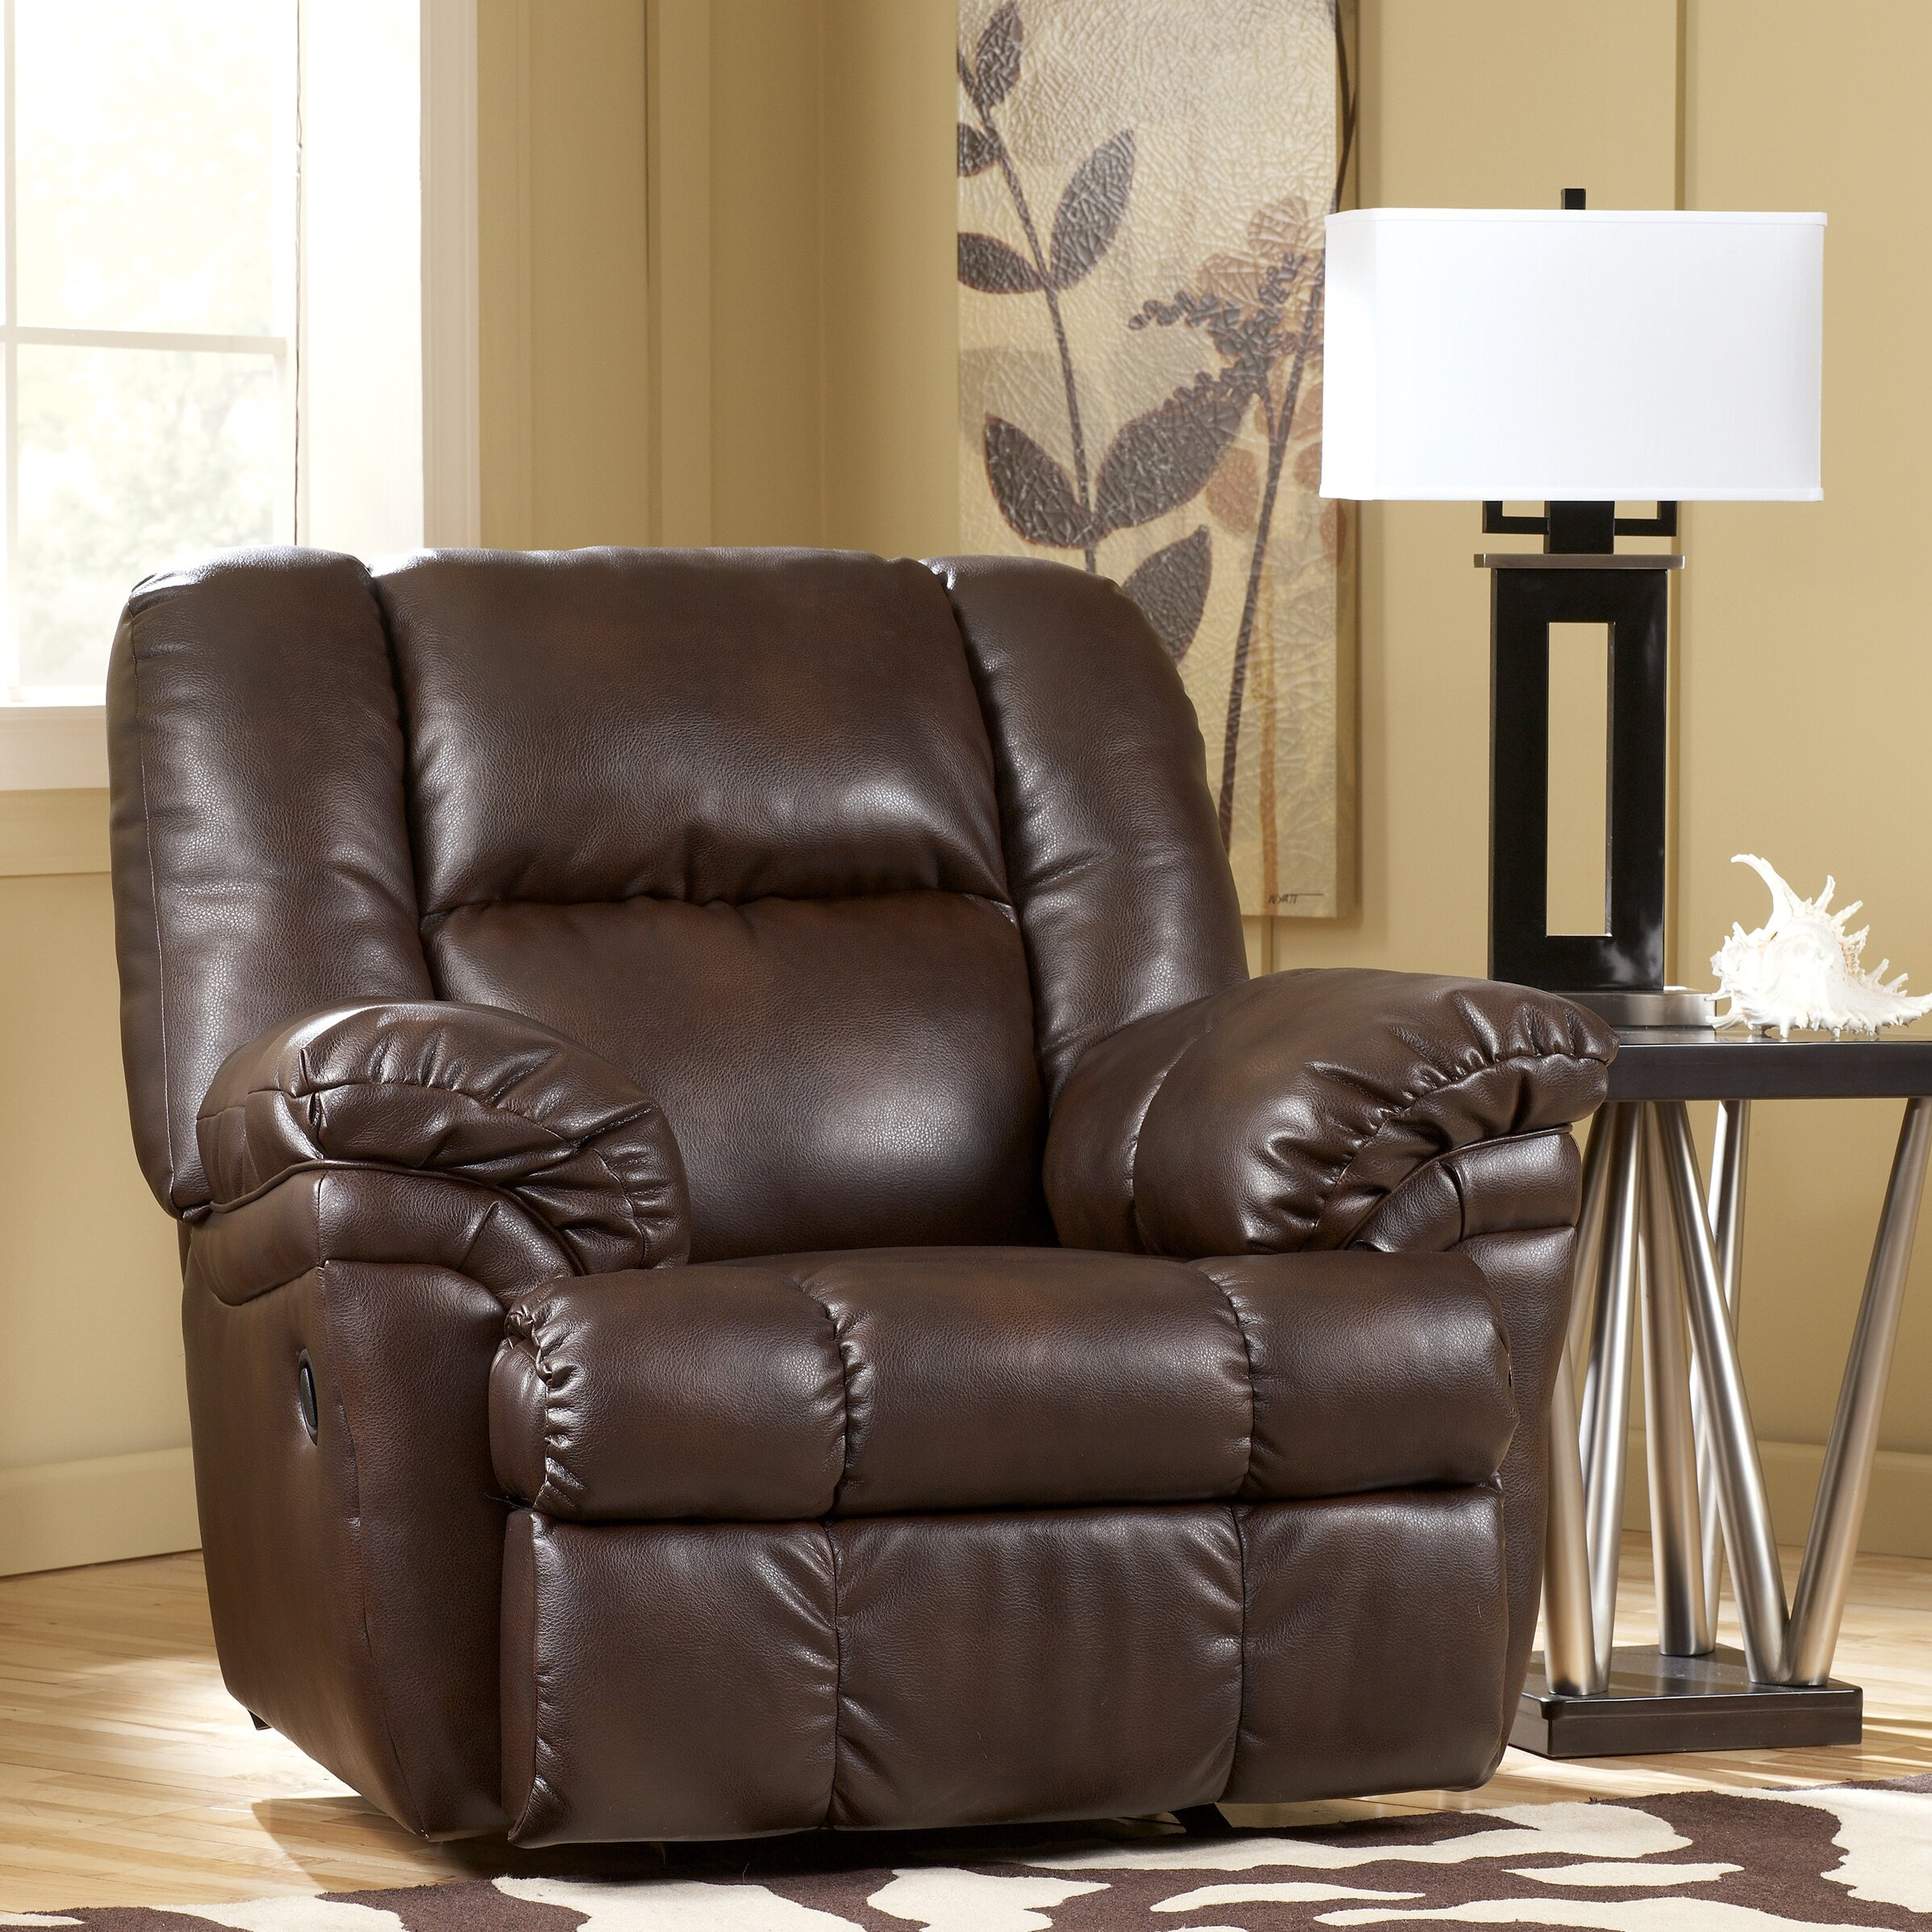 Signature design by ashley holt chaise recliner wayfair for Ashley chaise recliner